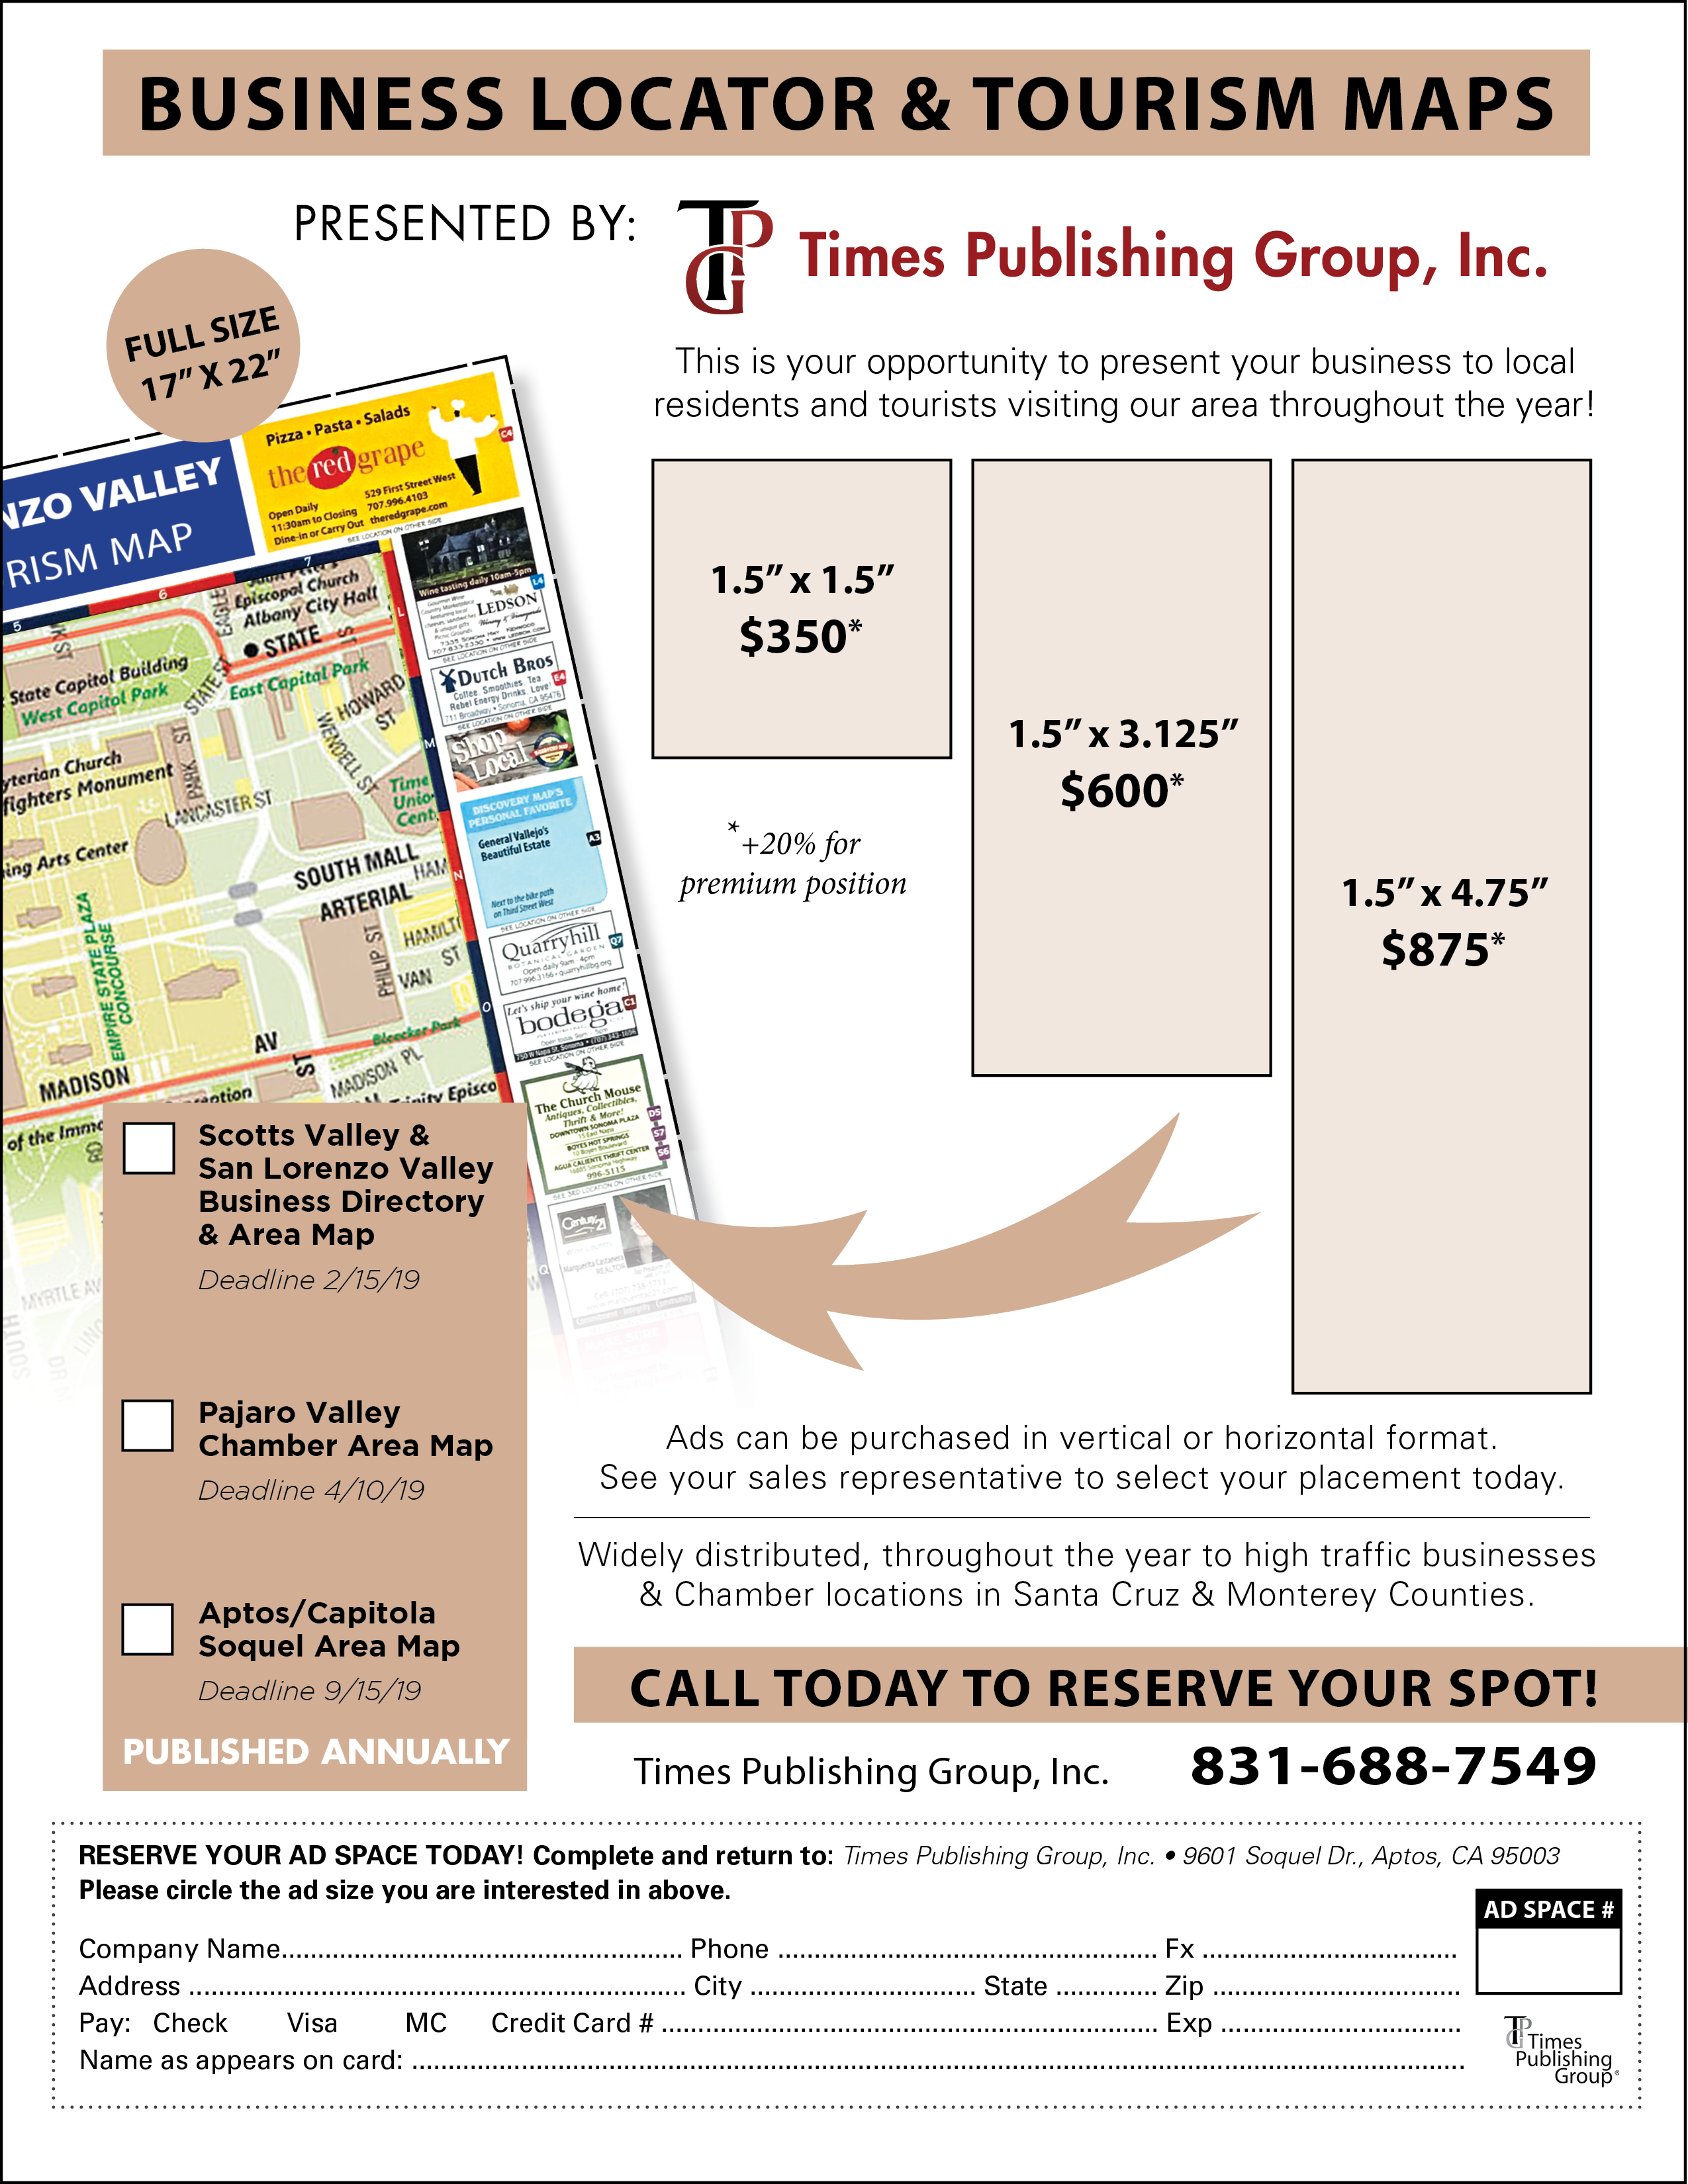 Advertise at TPG — Times Publishing Group, Inc